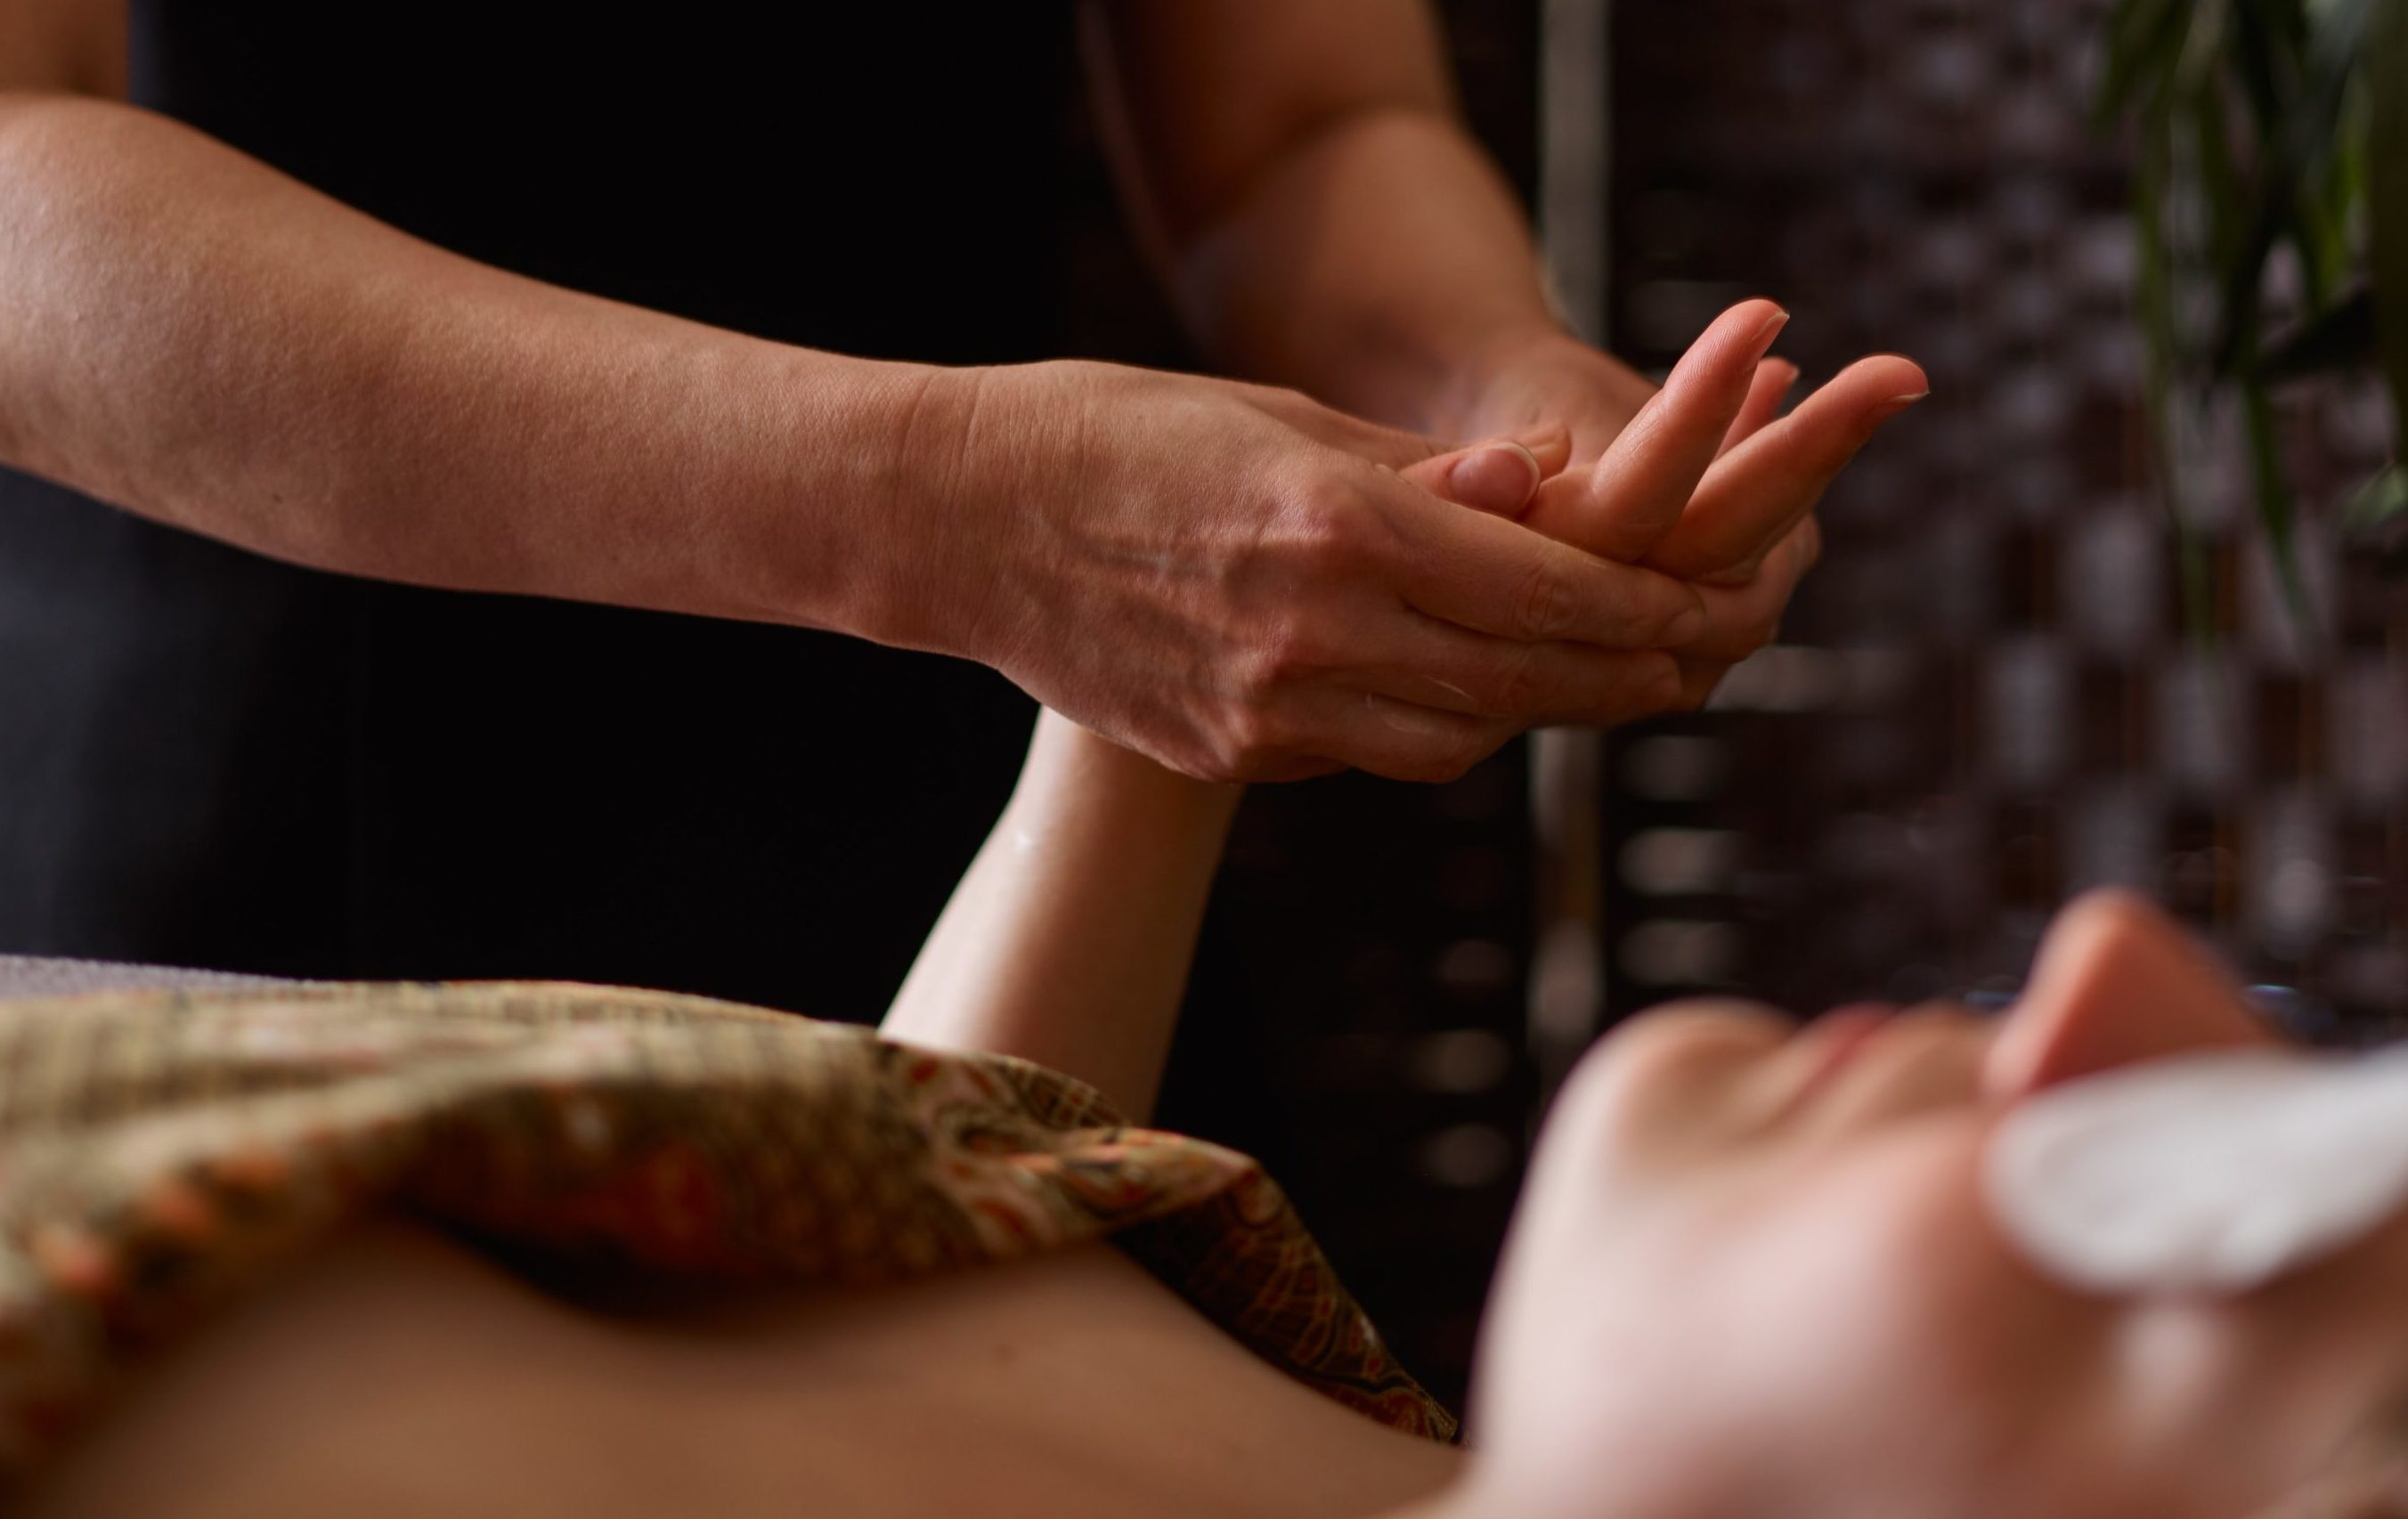 Hand massage as part of a luxury facial treatment at SenSpa